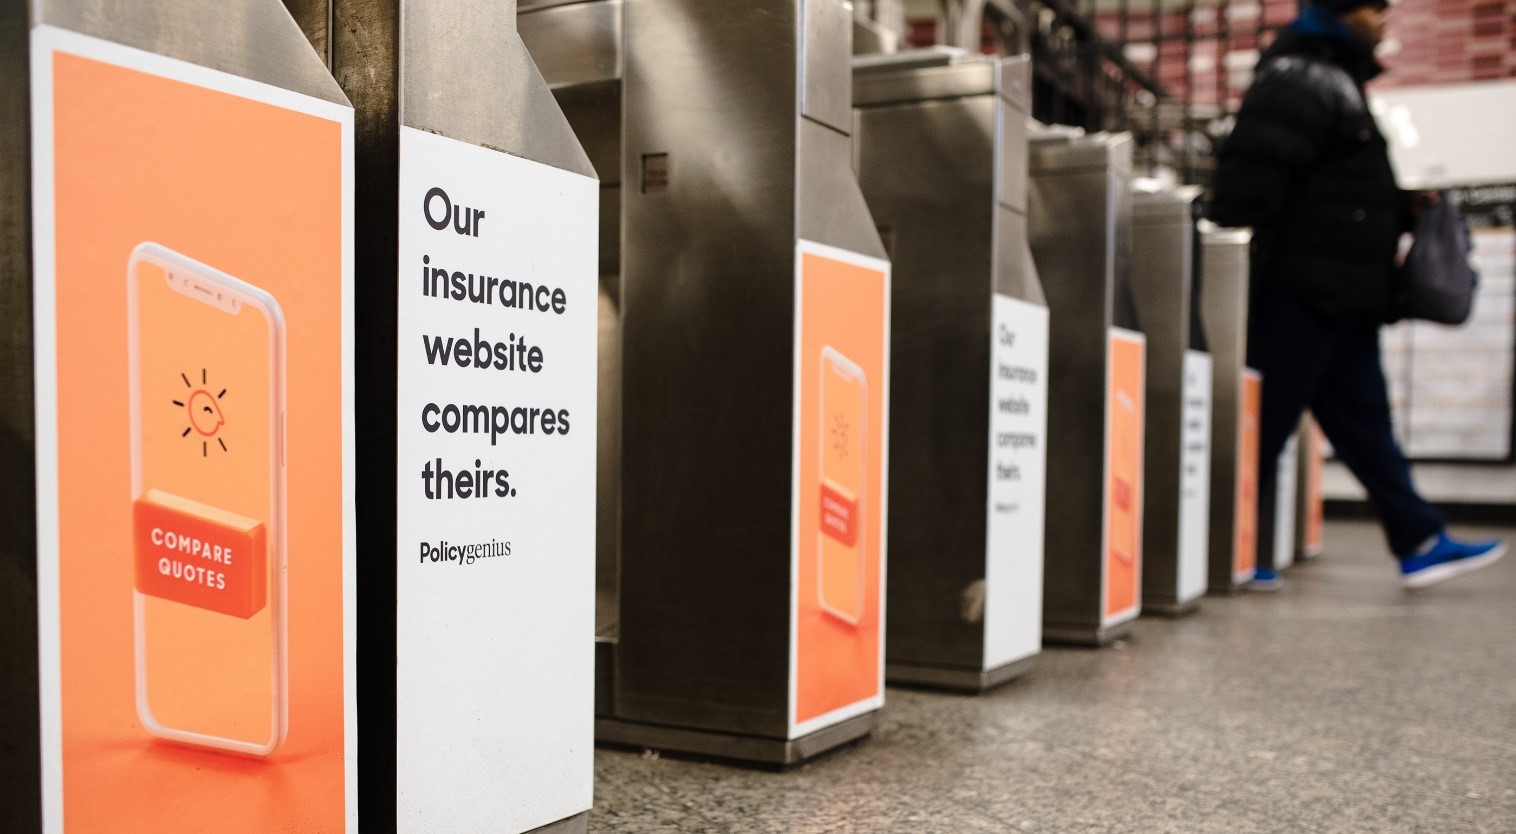 PolicyGenius banner at the airport